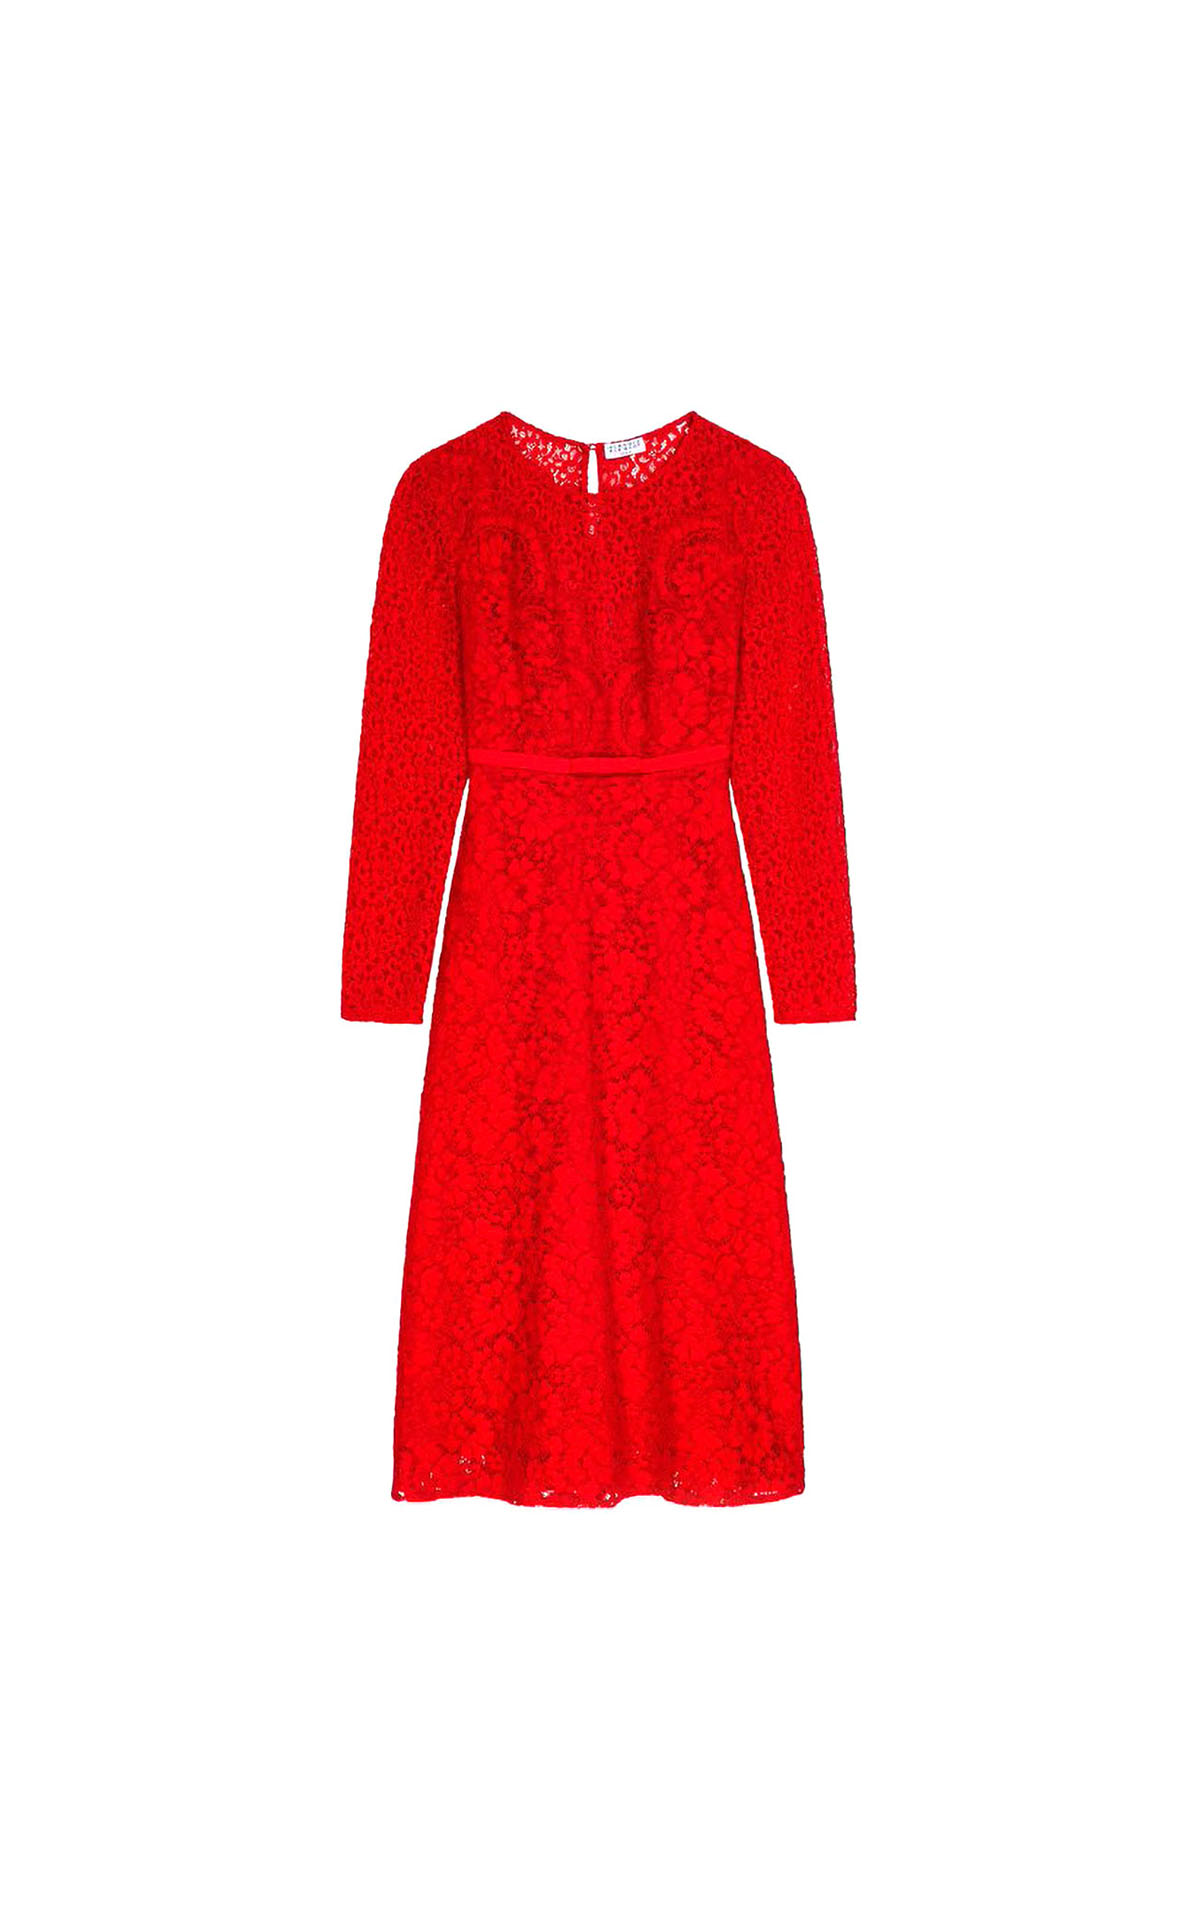 Claudie Pierlot robe at The Bicester Village Shopping Collection